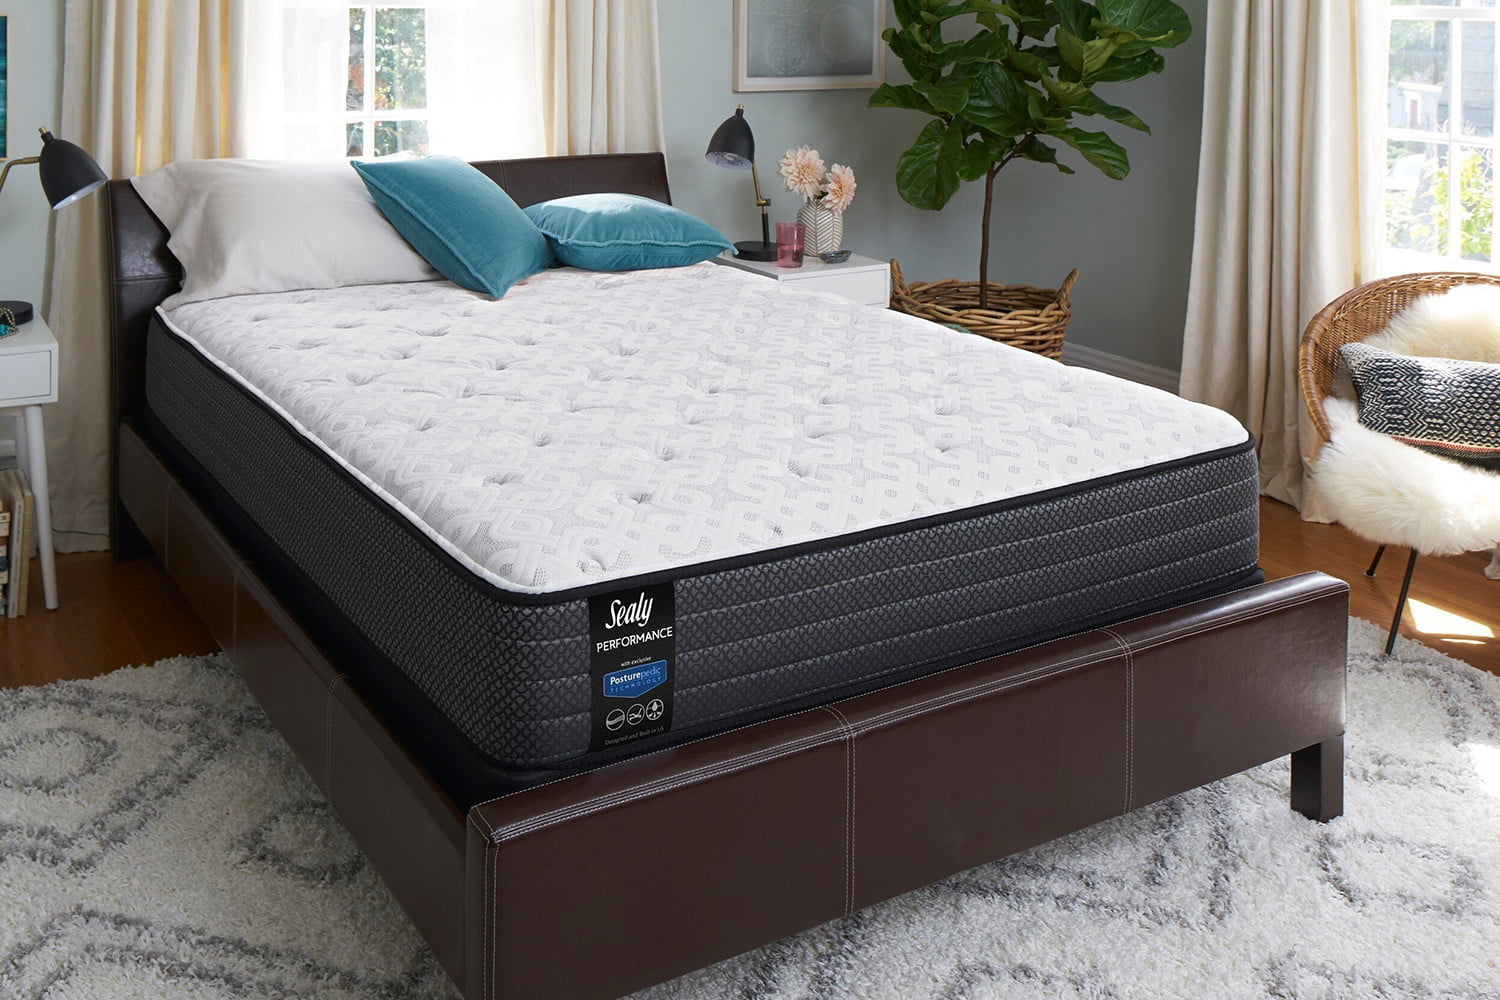 Home Depot Slashes Up To 30% Off Mattresses For Columbus Day Weekend